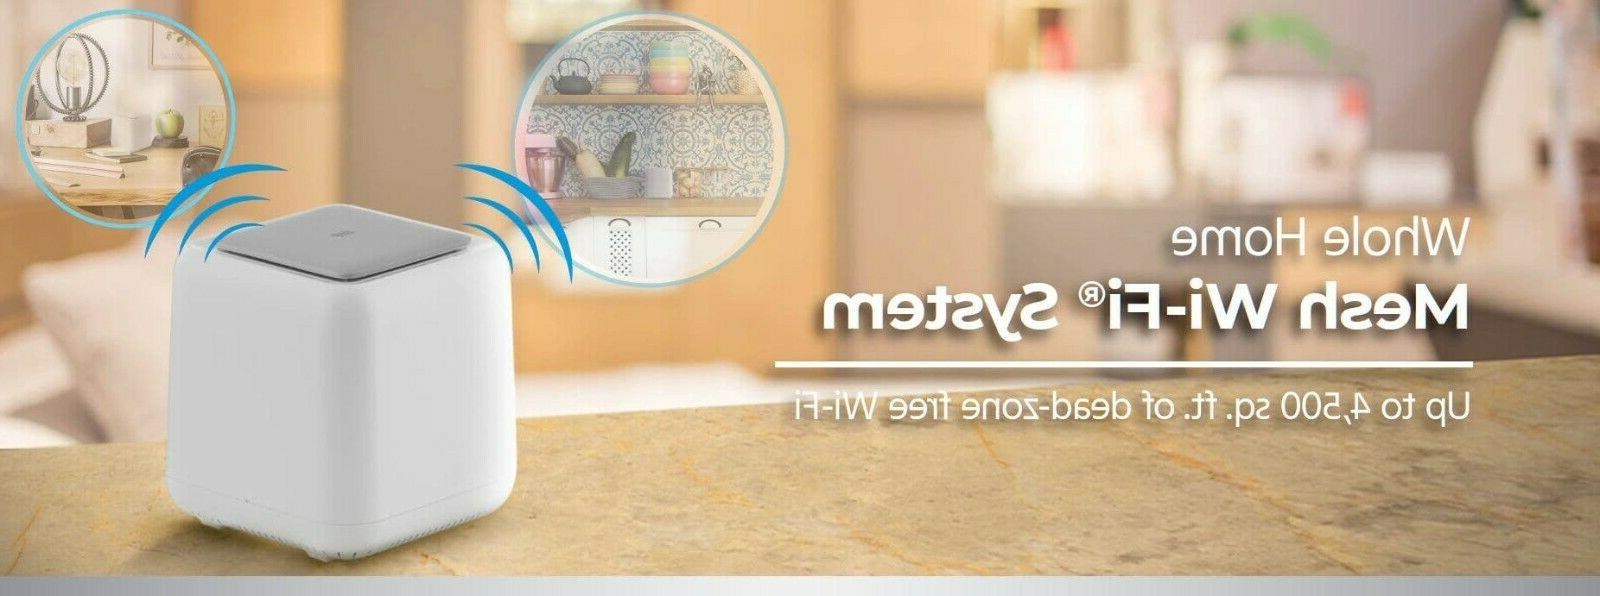 whole home mesh wi fi system wi